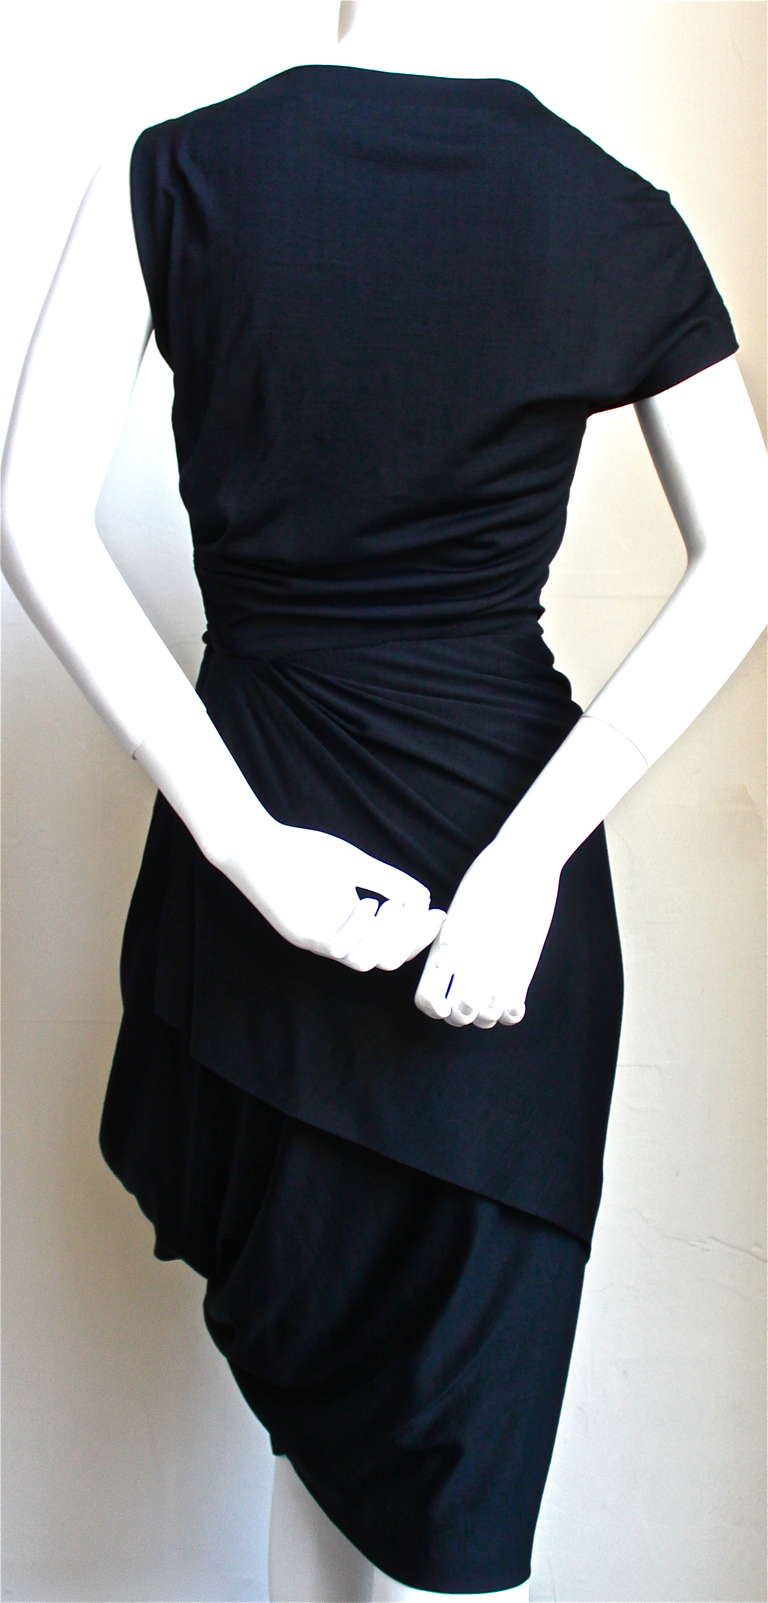 1950's PEDRO RODRIGUEZ haute couture asymmetrical draped wool jersey dress 6